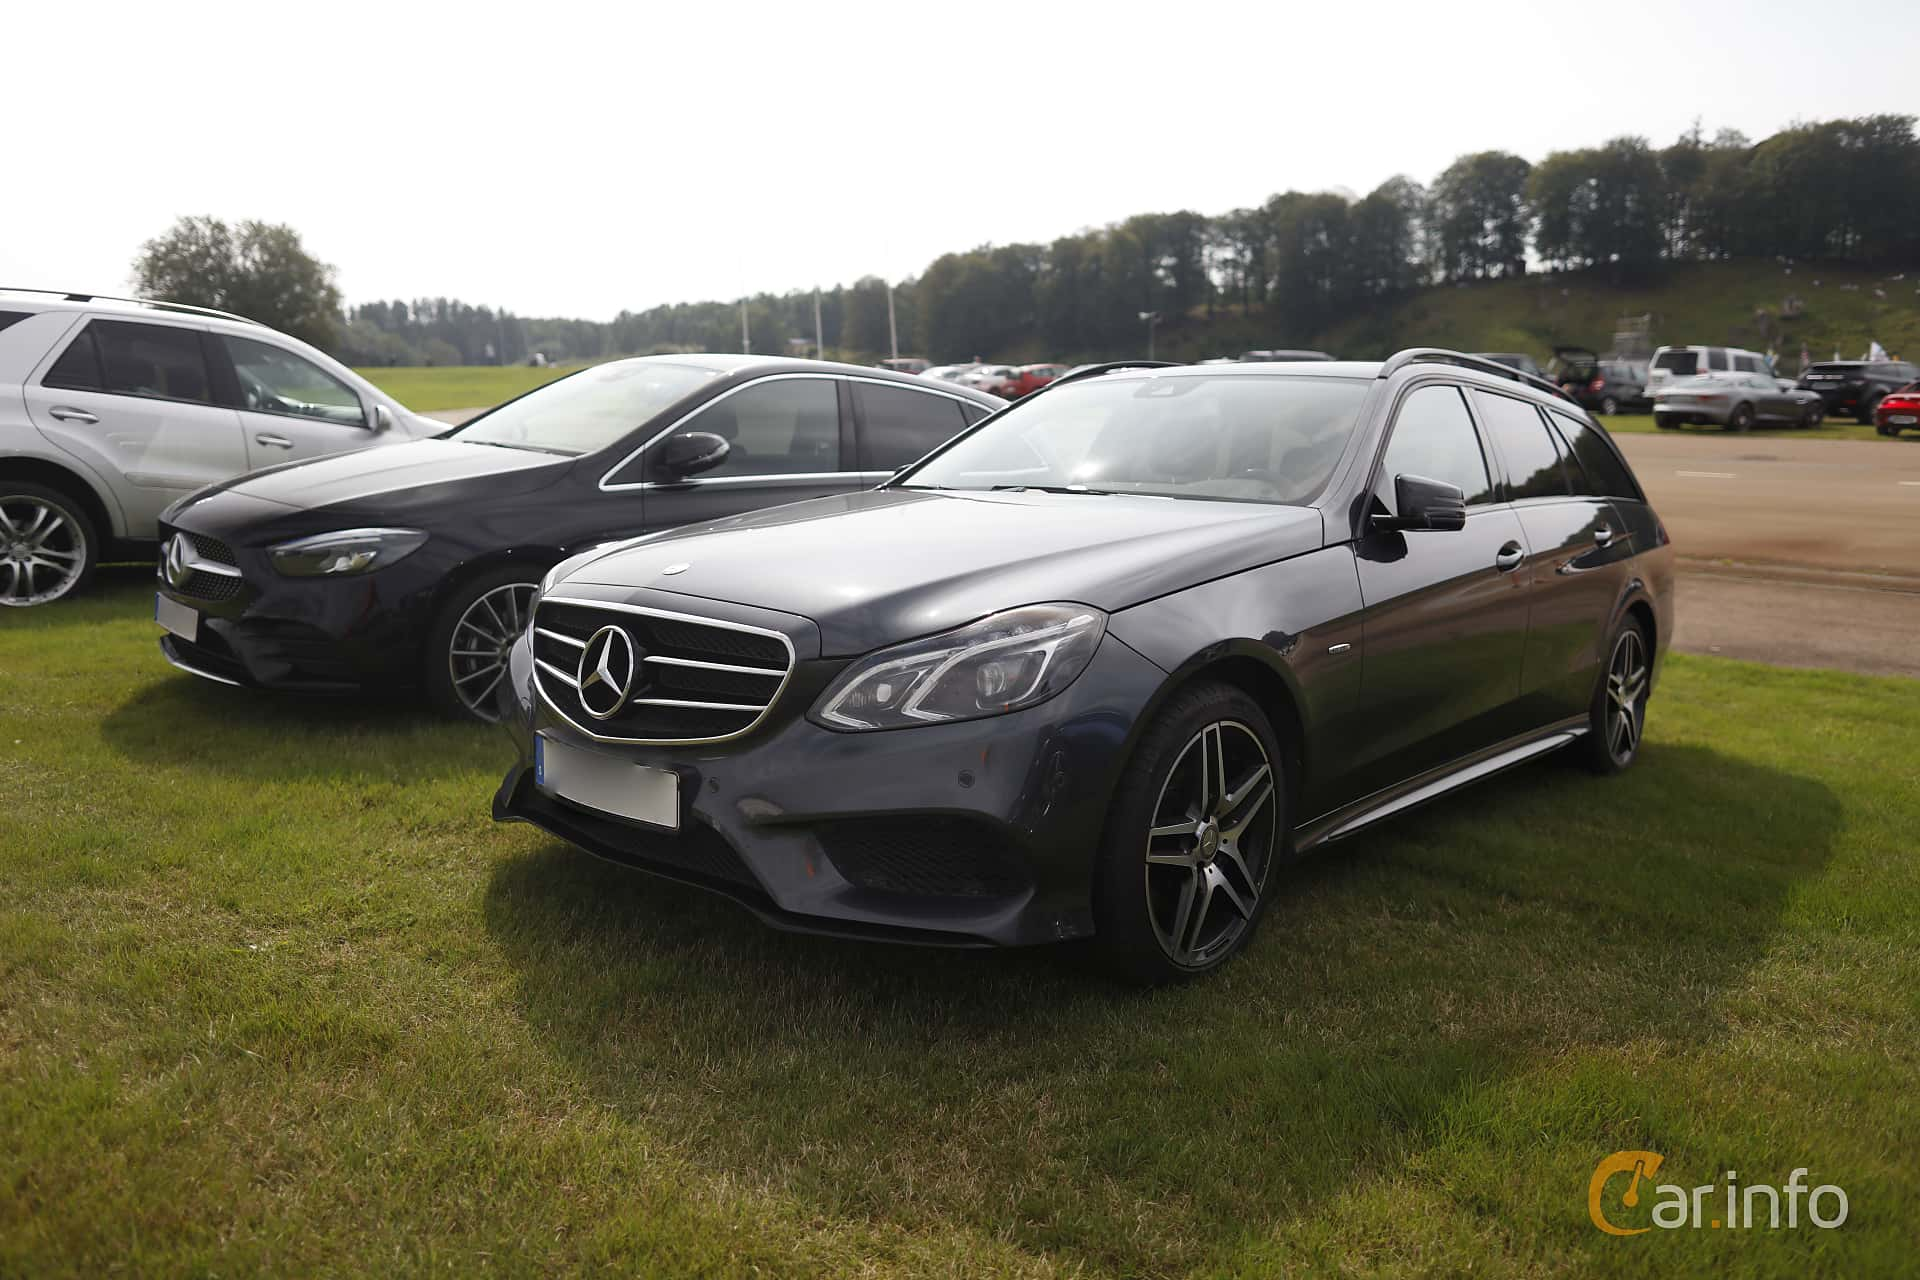 Mercedes-Benz E 220 T BlueTEC 4MATIC  7G-Tronic, 170hp, 2016 at Autoropa Racing day Knutstorp 2019